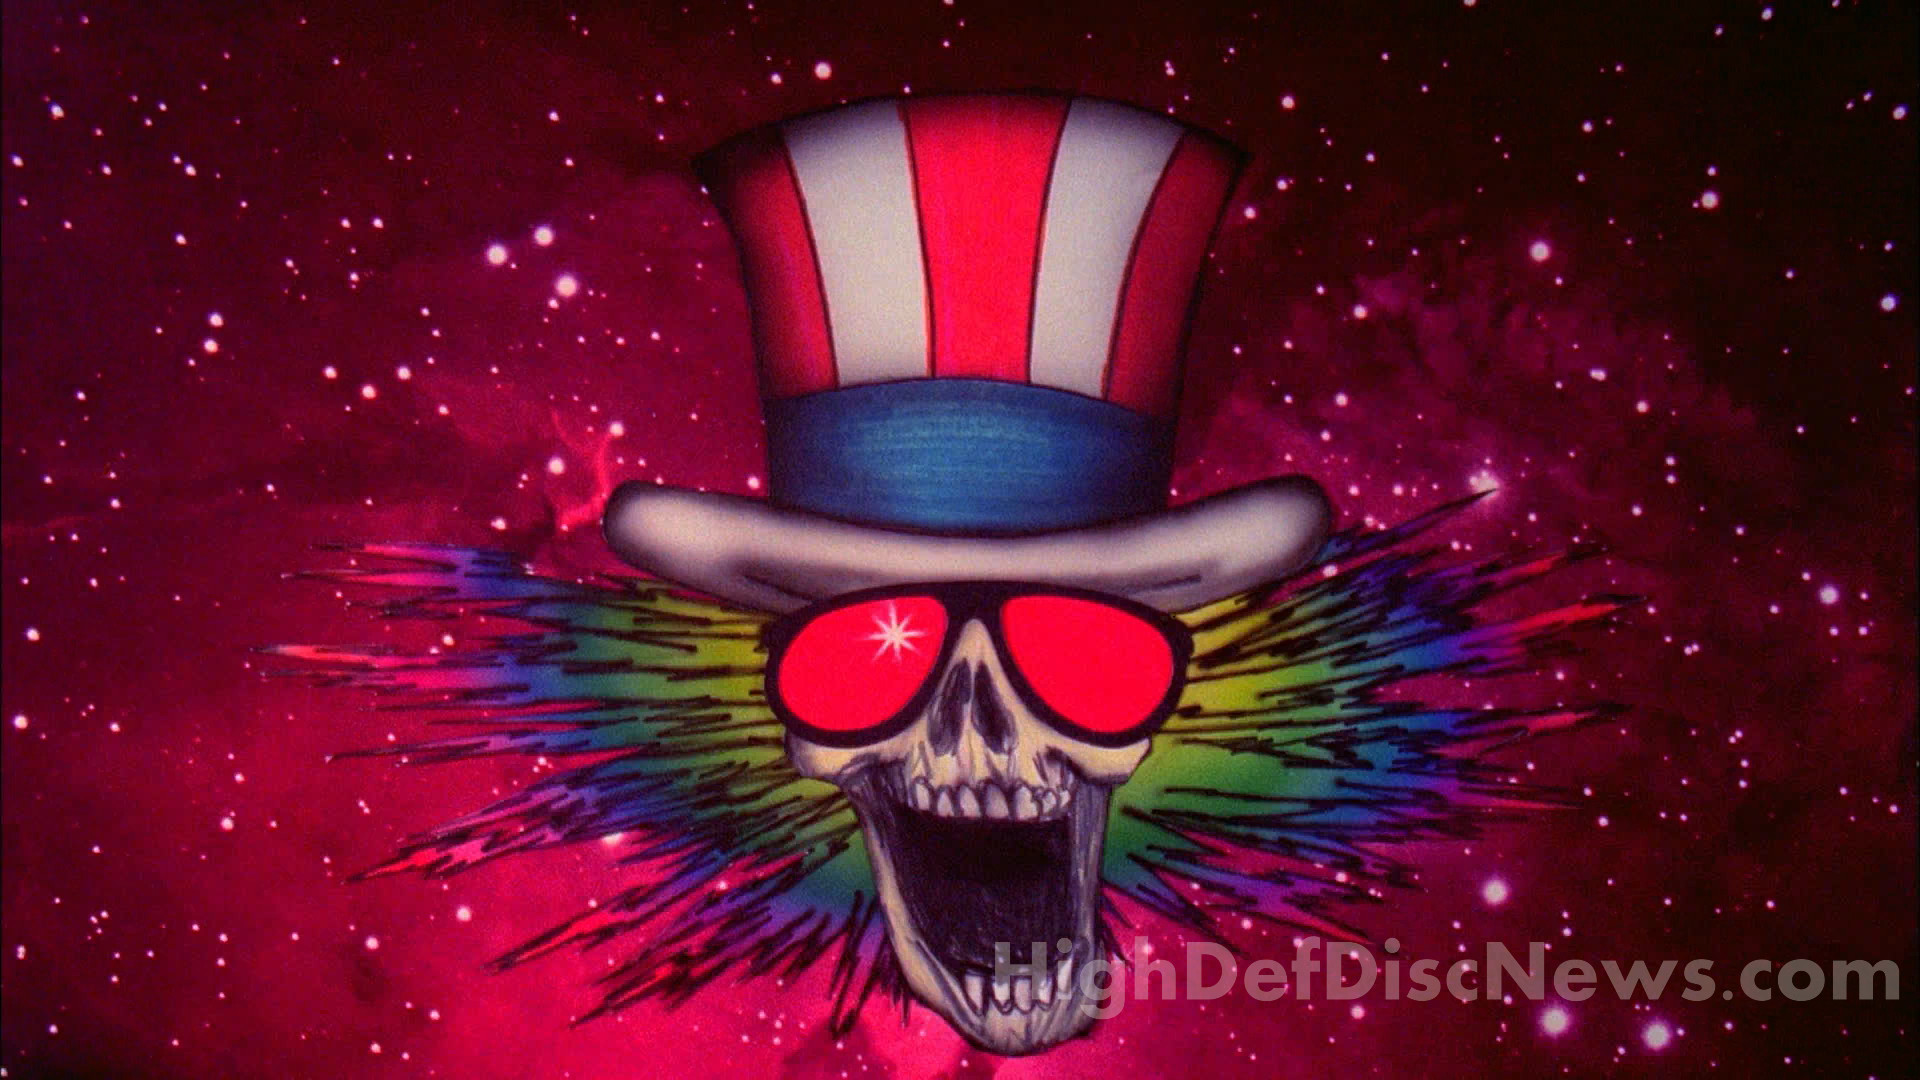 1920x1080 GRATEFUL DEAD WALLPAPERS FREE Wallpapers & Background images .